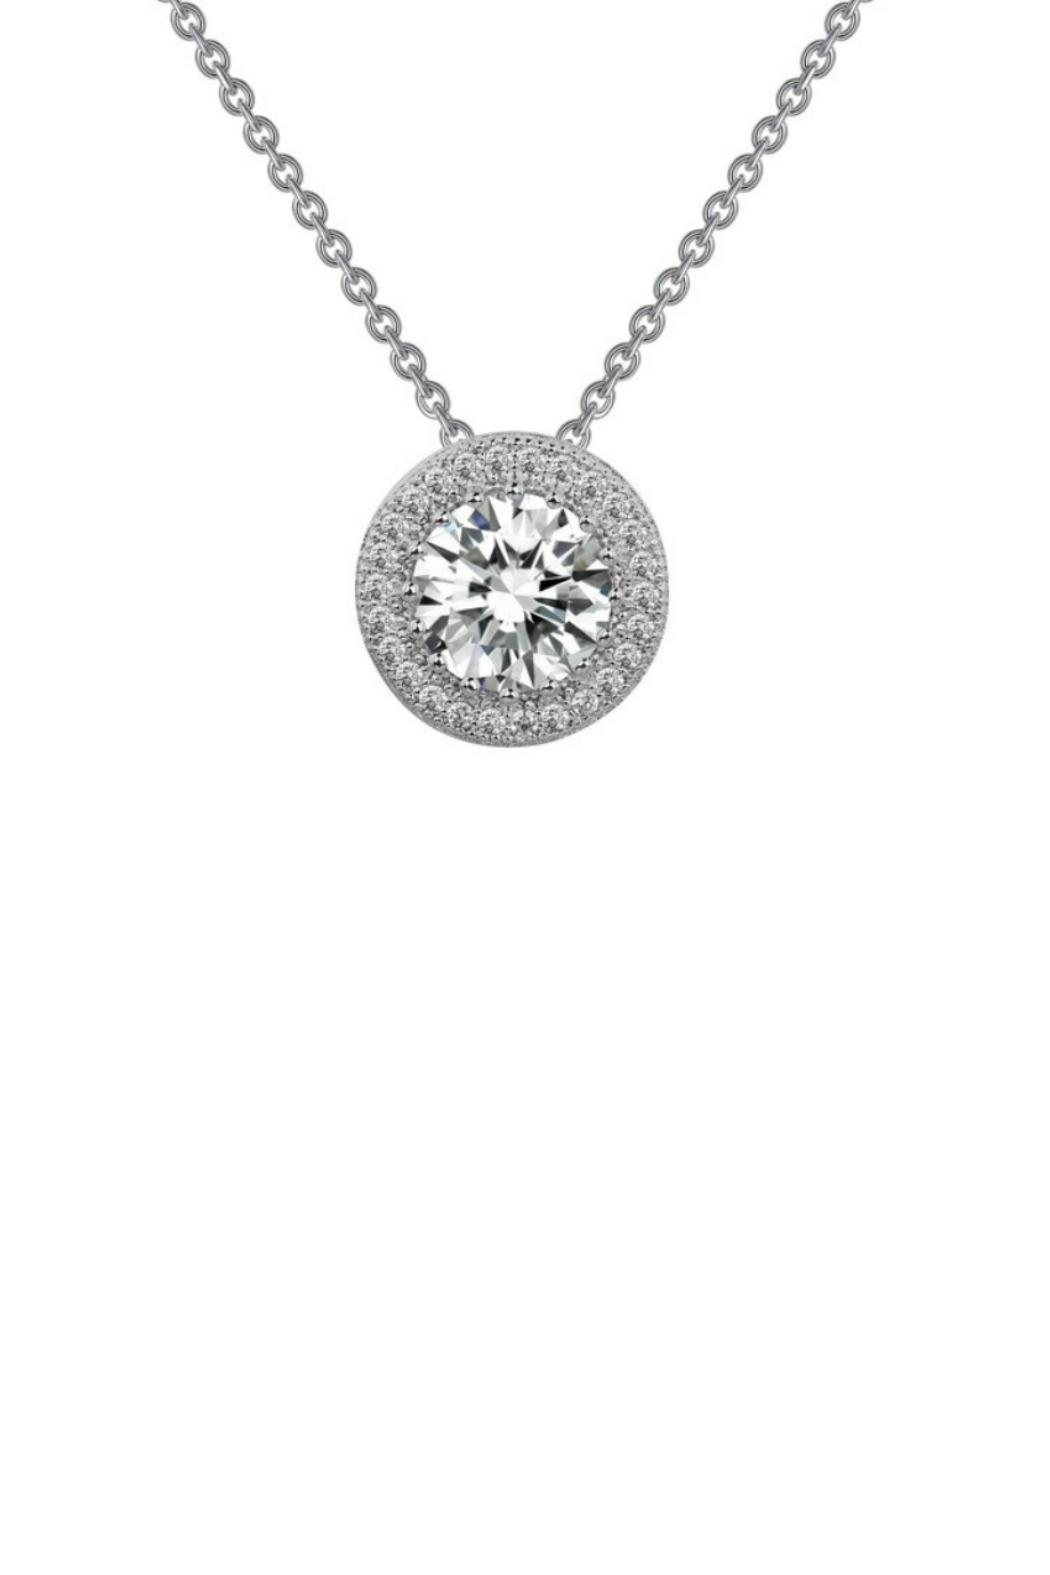 product simulated circle ctw sale european double necklace jewelry shop diamond